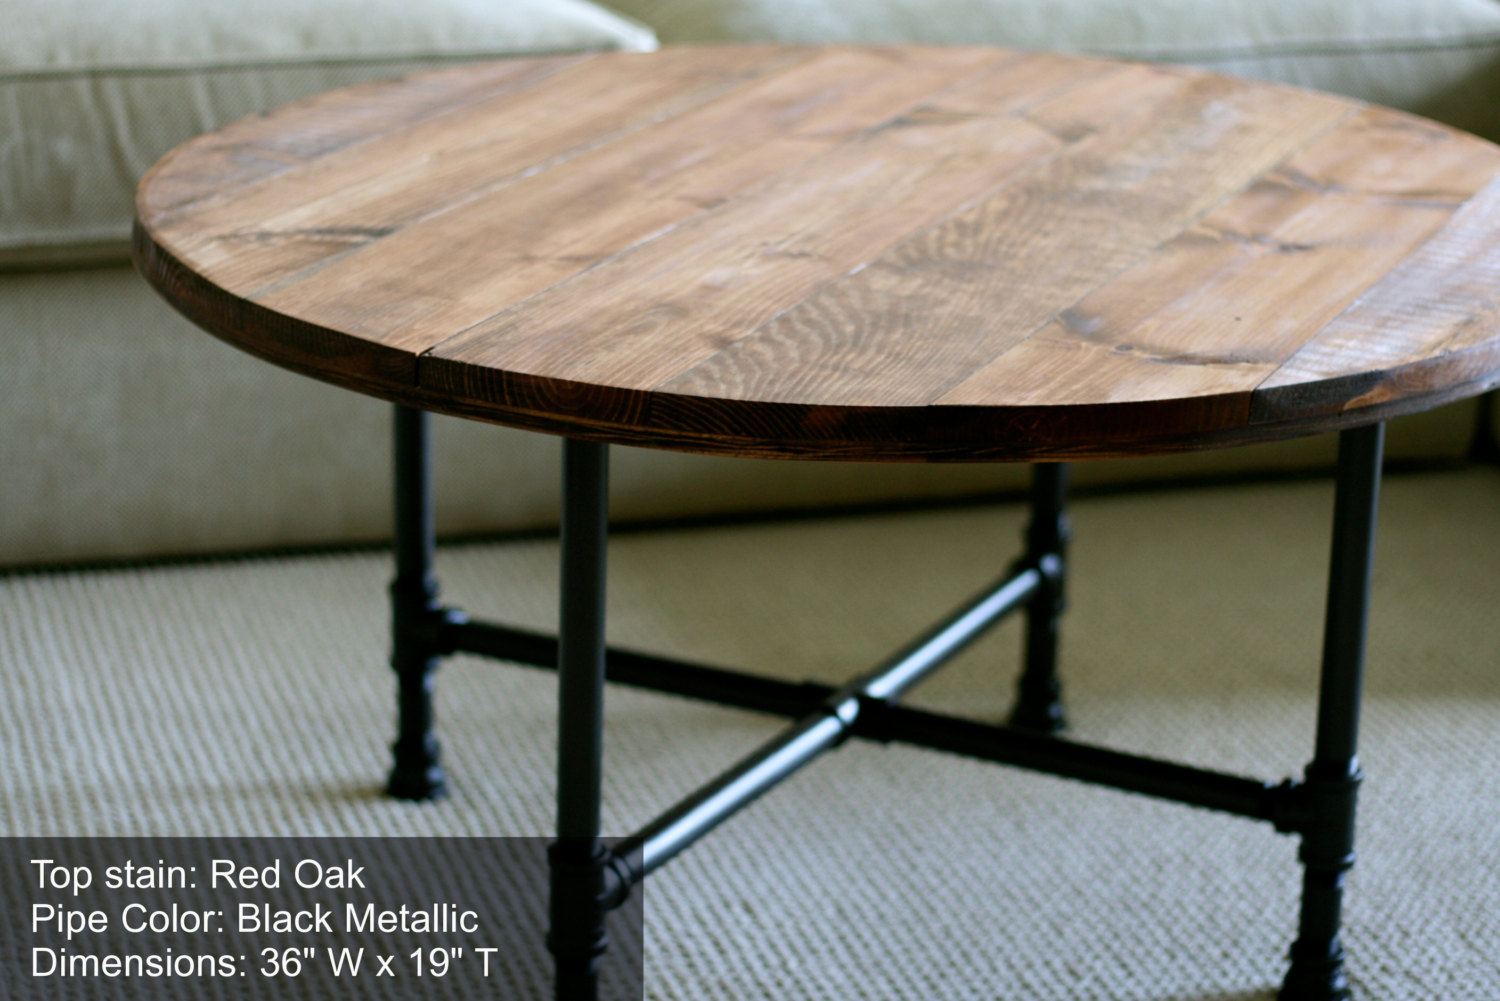 Round Industrial Coffee Table Reclaimed Round Rustic Coffee Tables Distressed Wood Coffee Table (View 4 of 10)